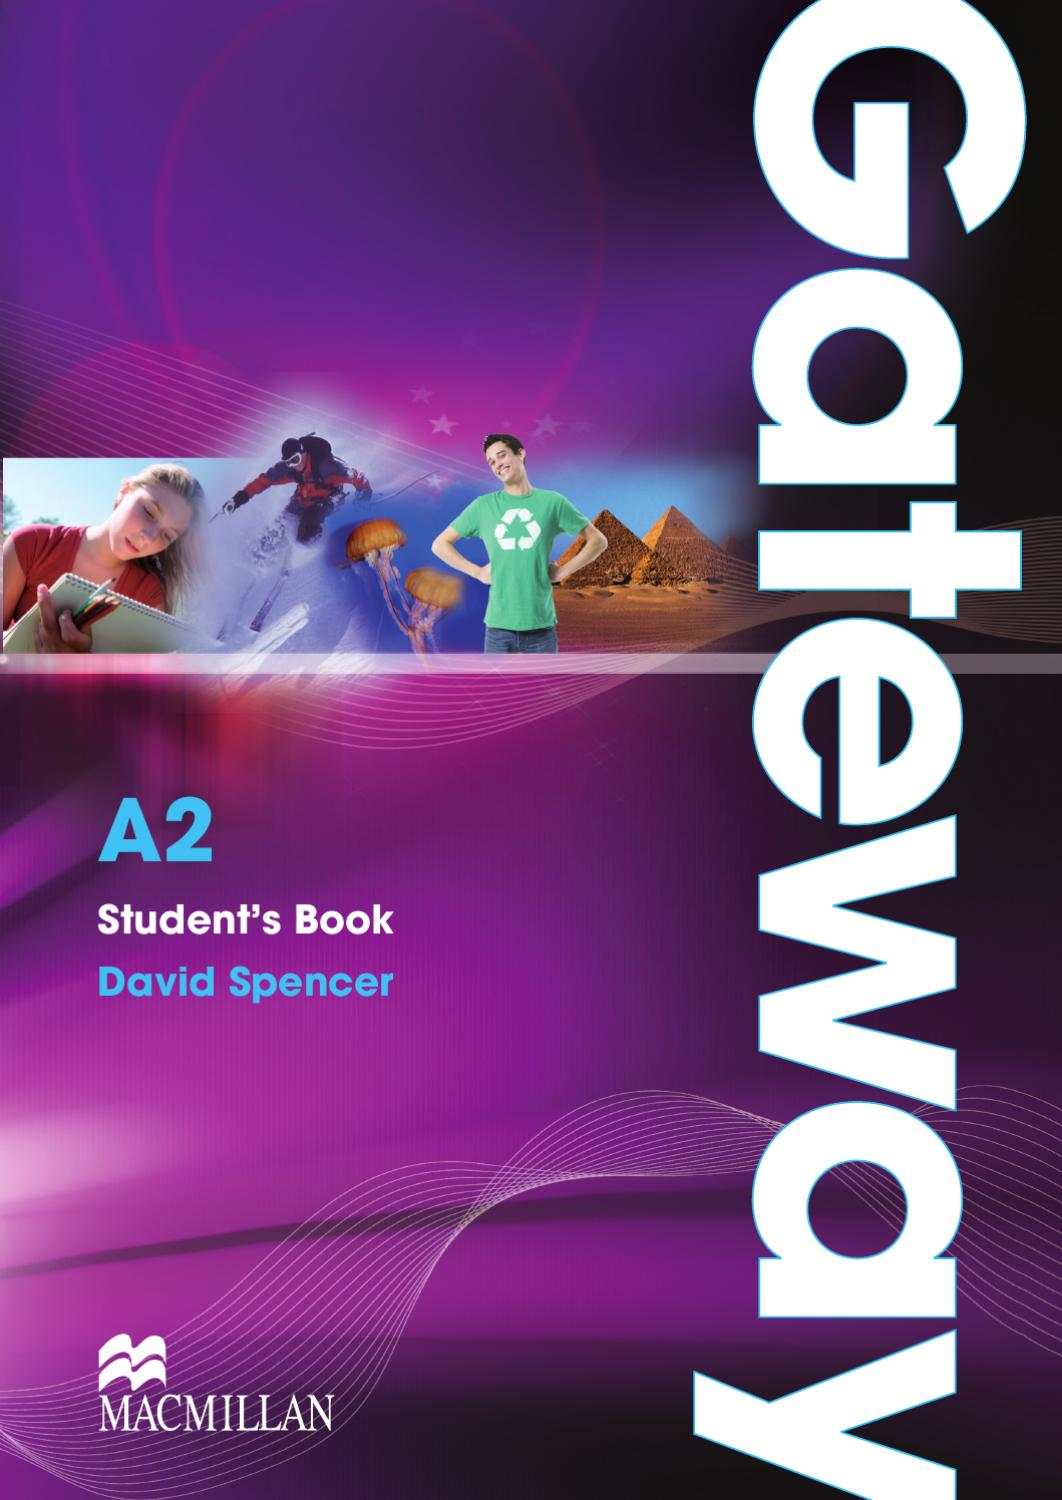 Gateway a2 student's book.